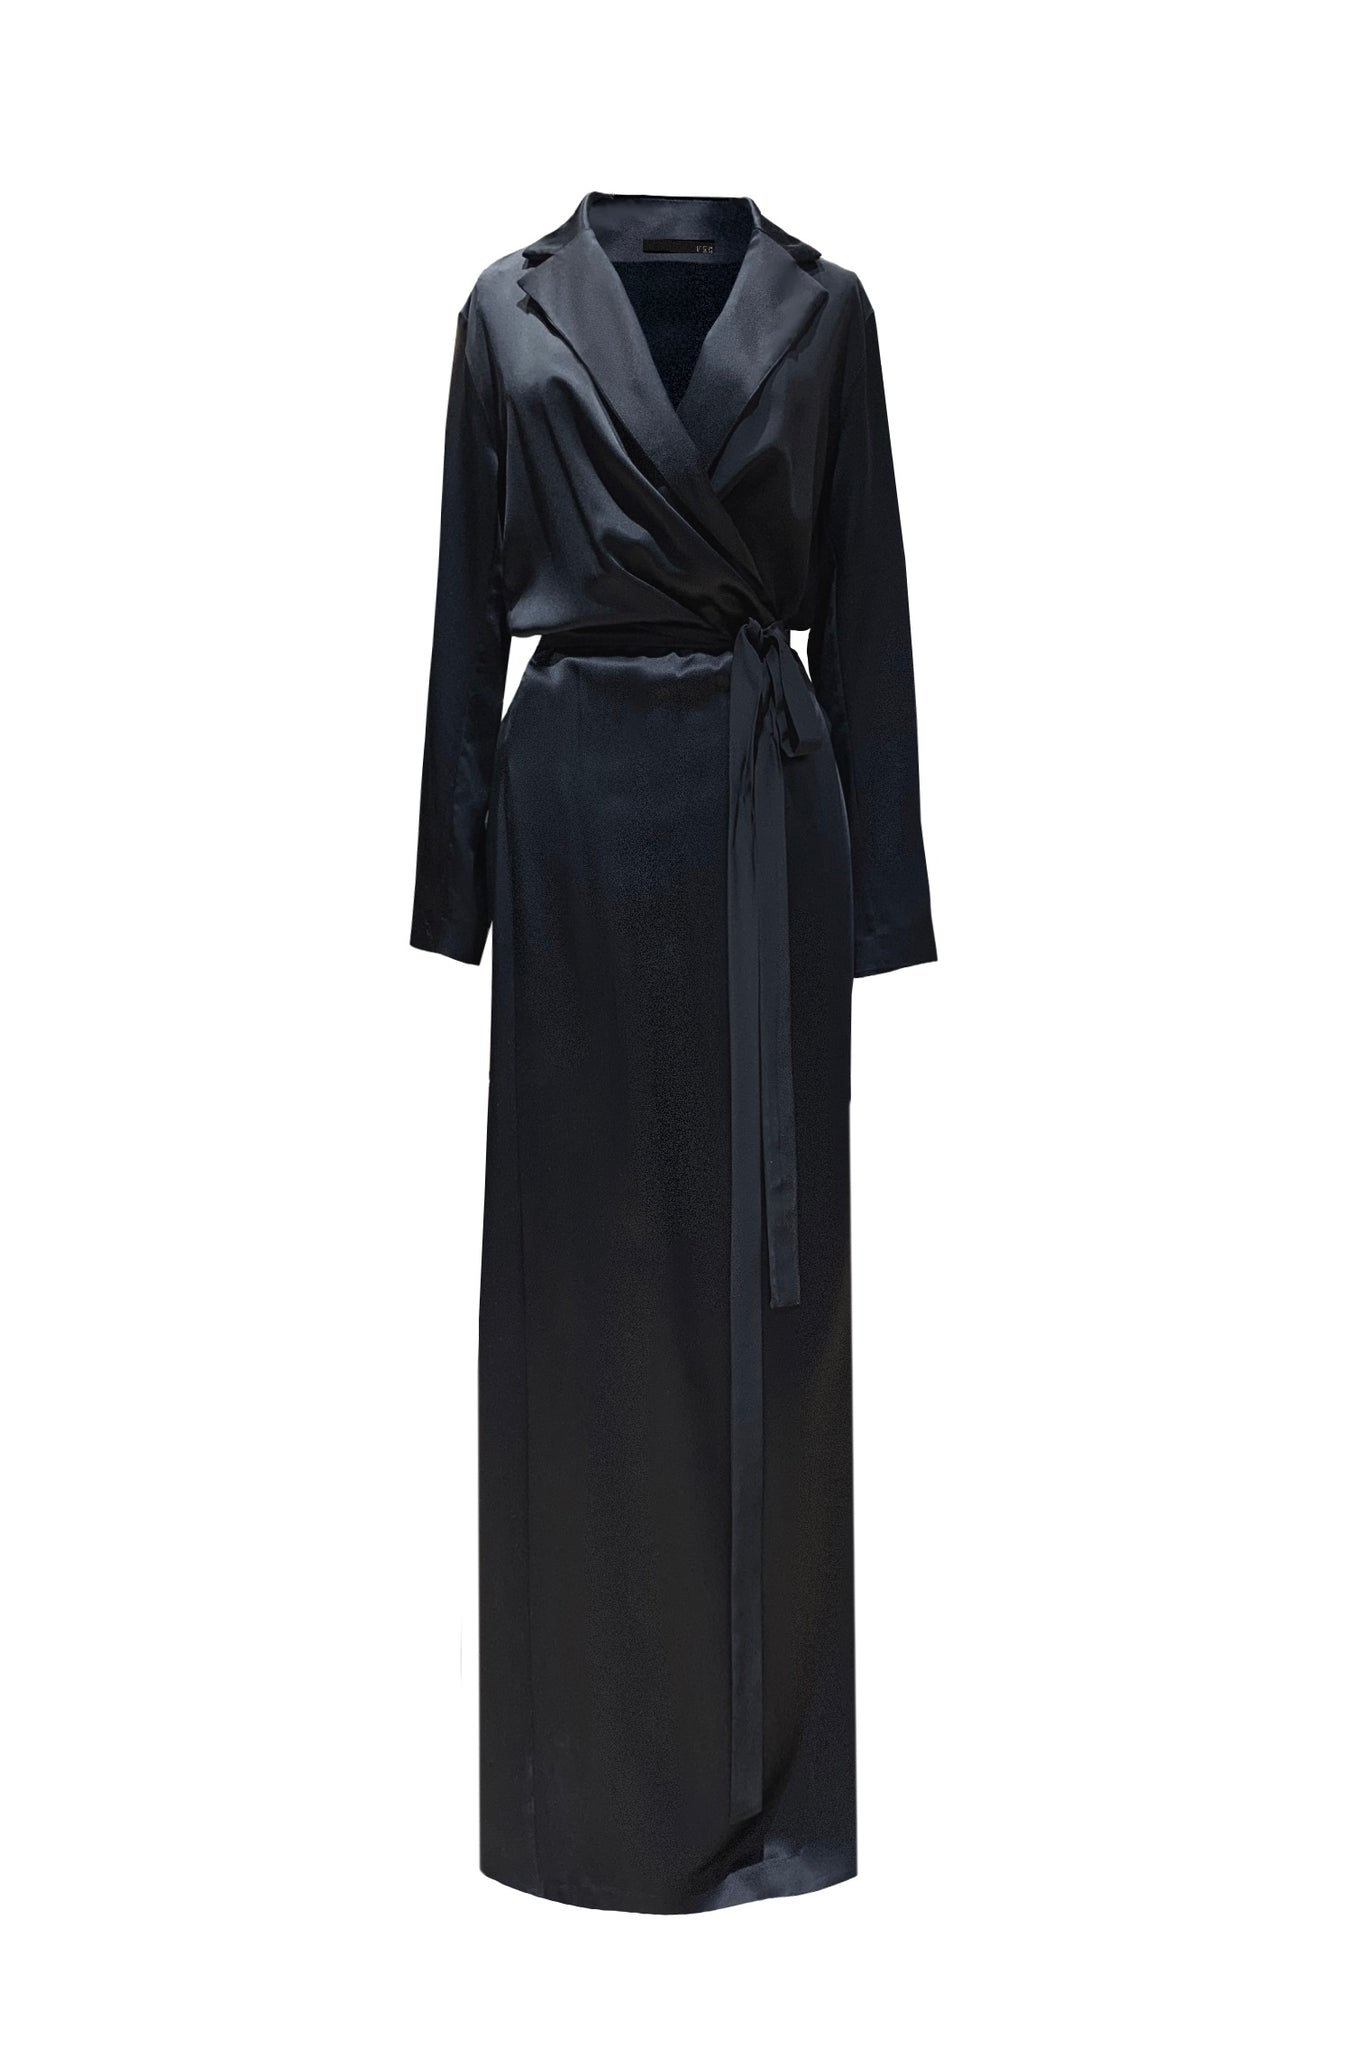 KES Full Length Underwood Dress- Black